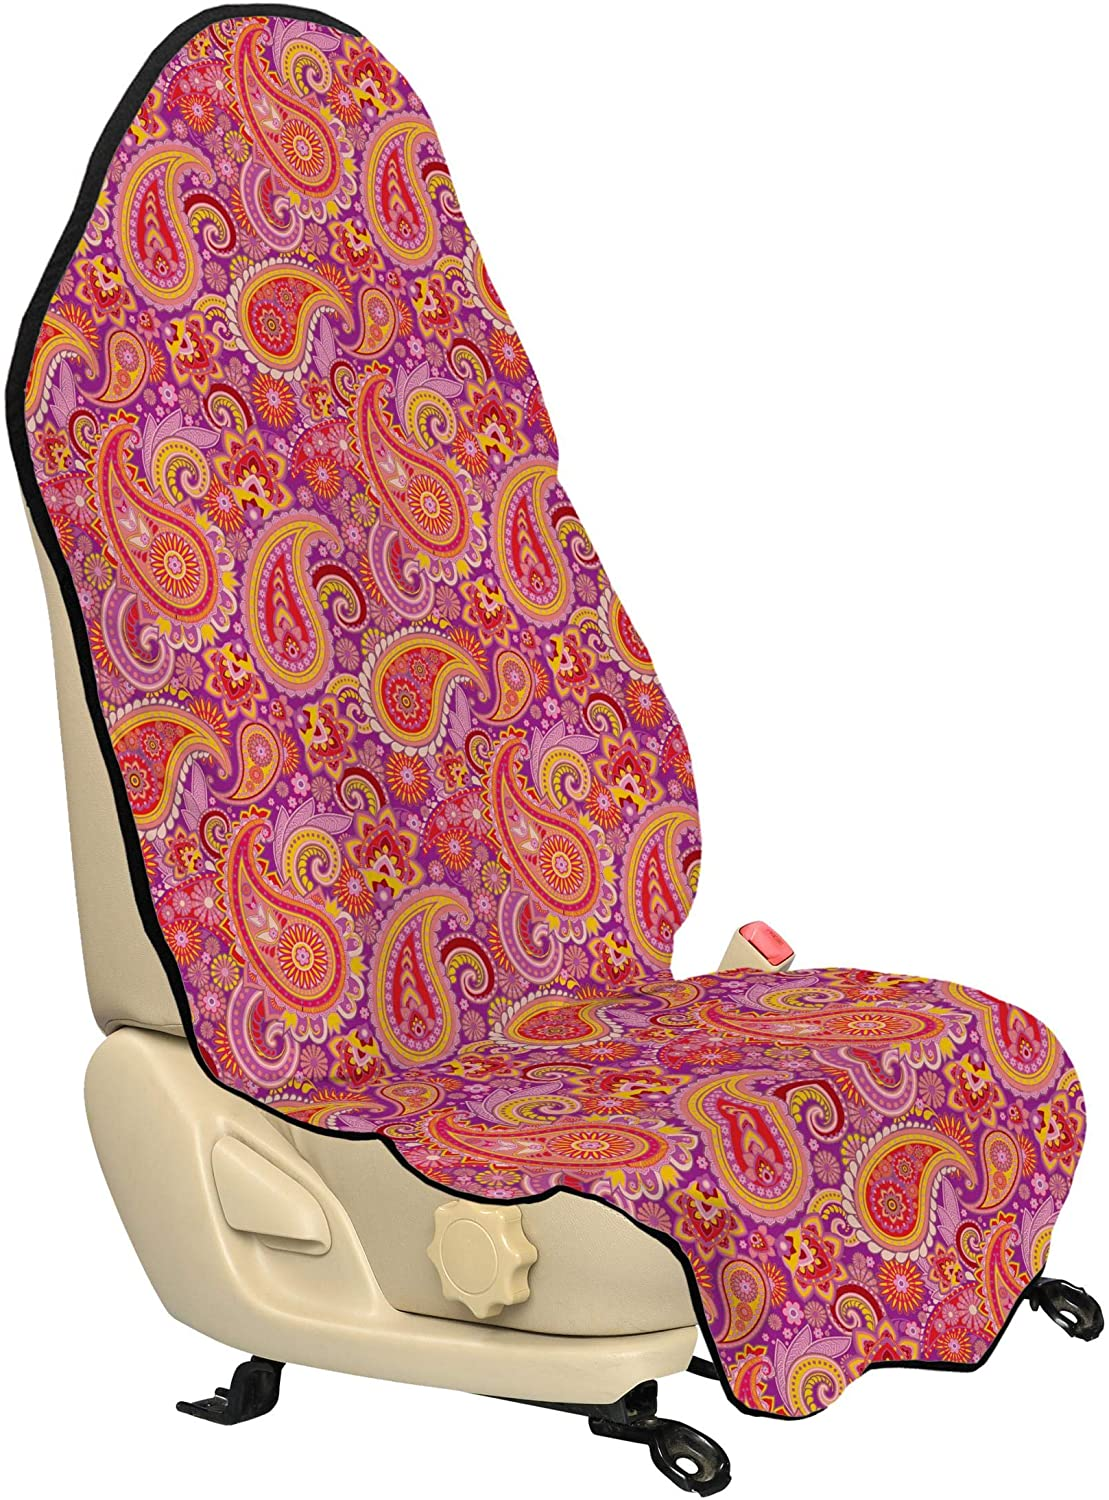 Lunarable Paisley Car Seat Hoodie, Design Elements Traditional Floral Vintage Culture Ethnicity, Car Seat Cover Protector Non Slip Backing Universal Fit, 30